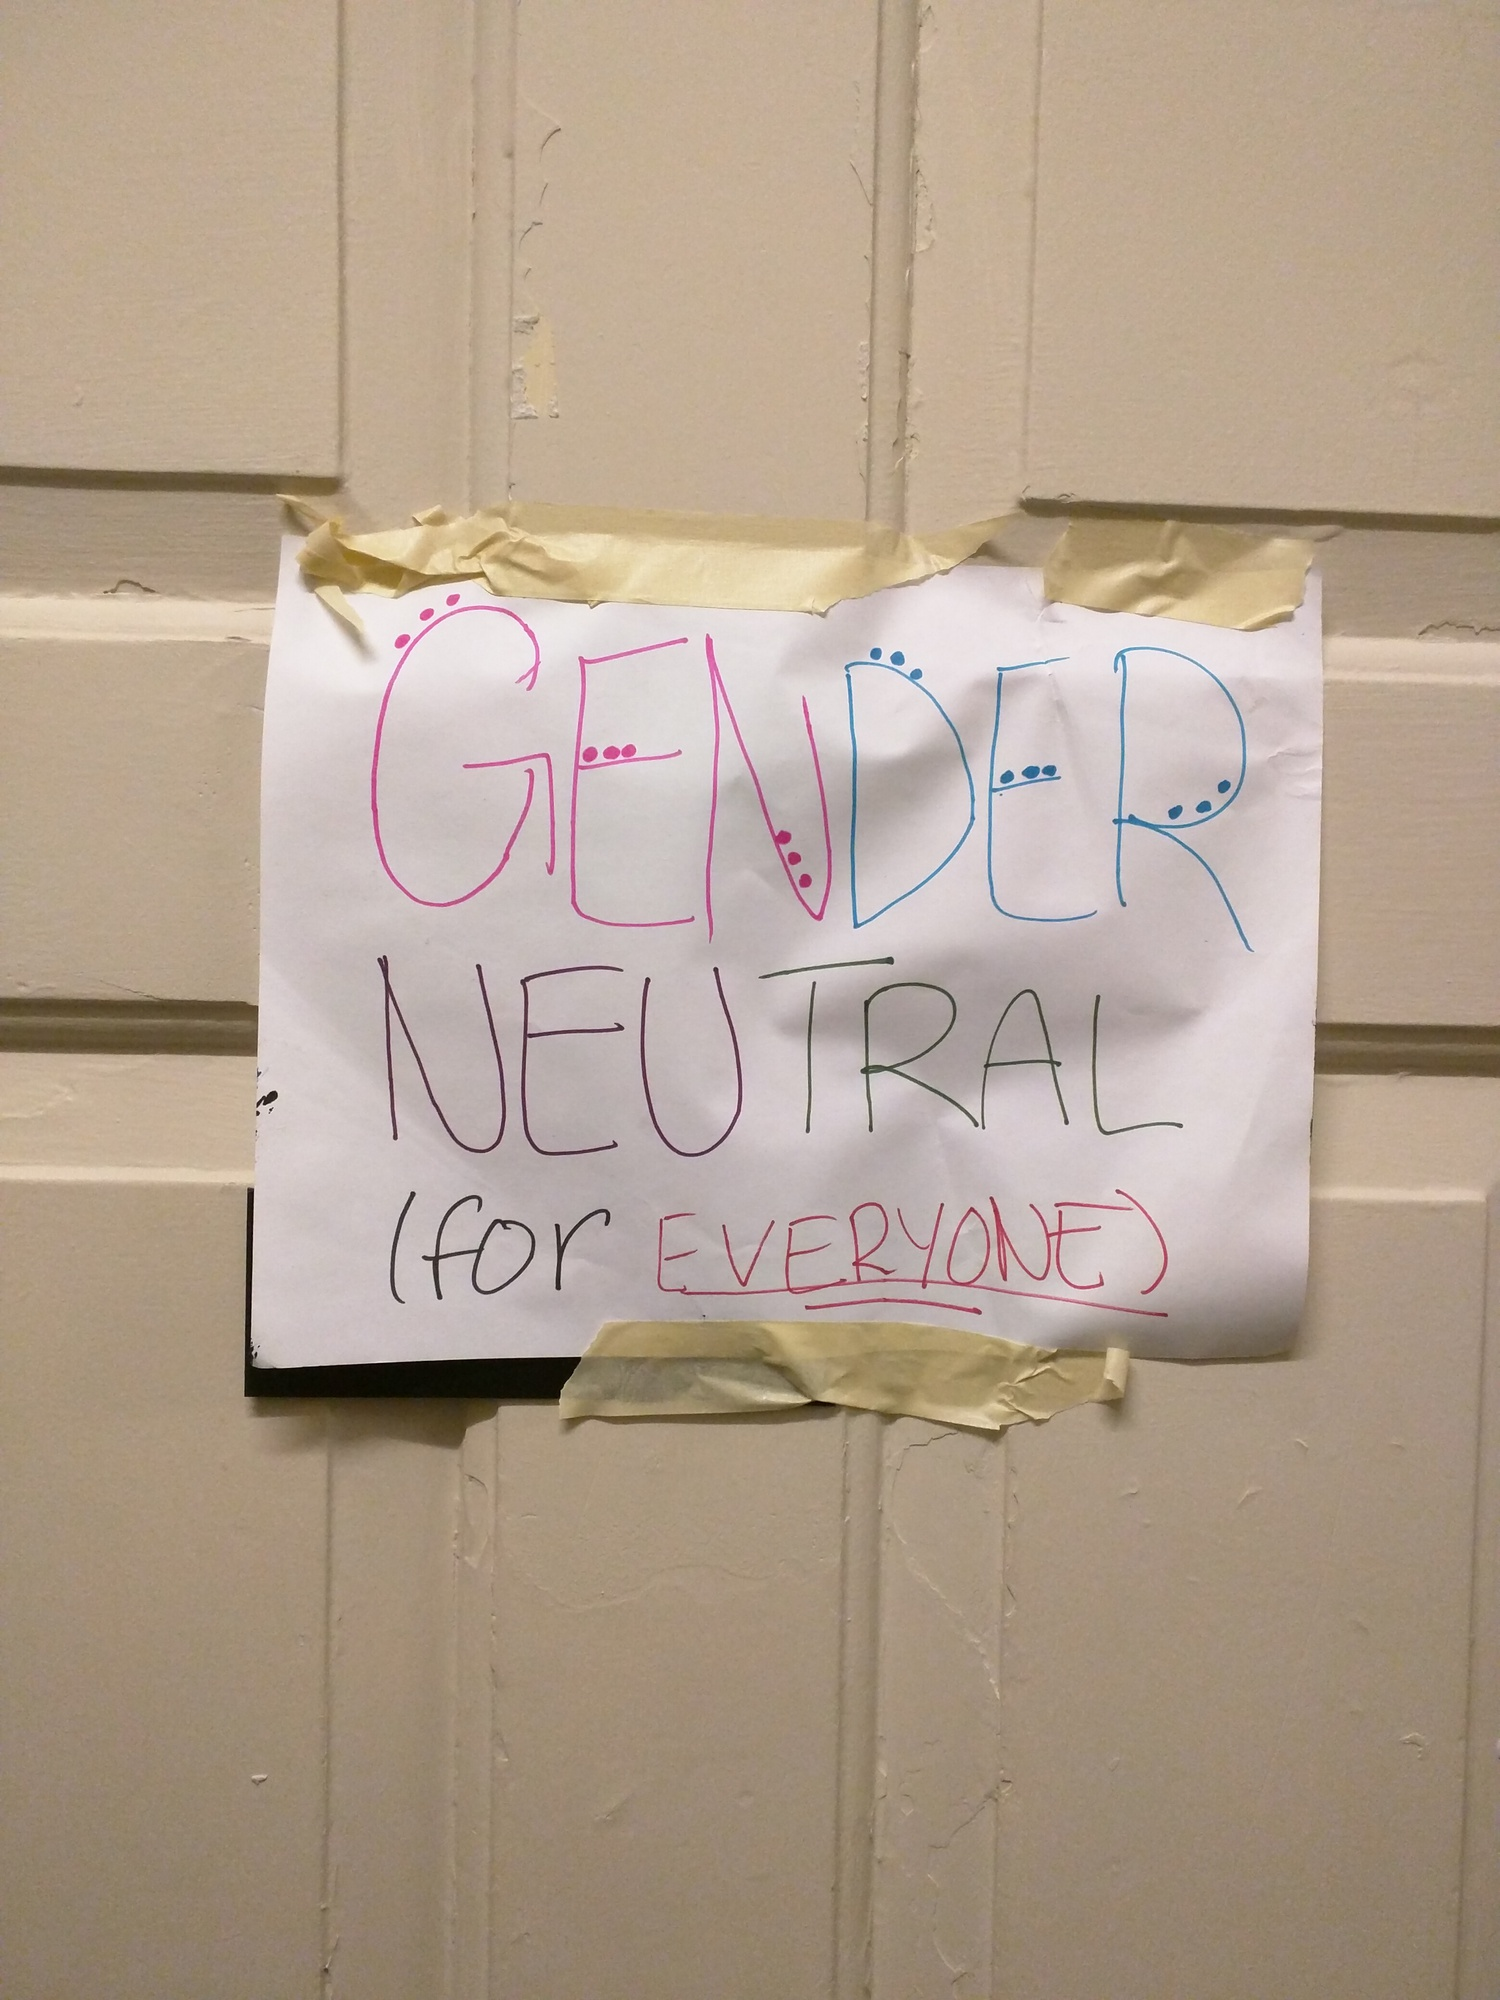 In March, Eliot House residents discovered that the sign on the gender-neutral bathroom near their dining hall had been taken down. Someone had taped up a colored version of the original sign by the end of the day.